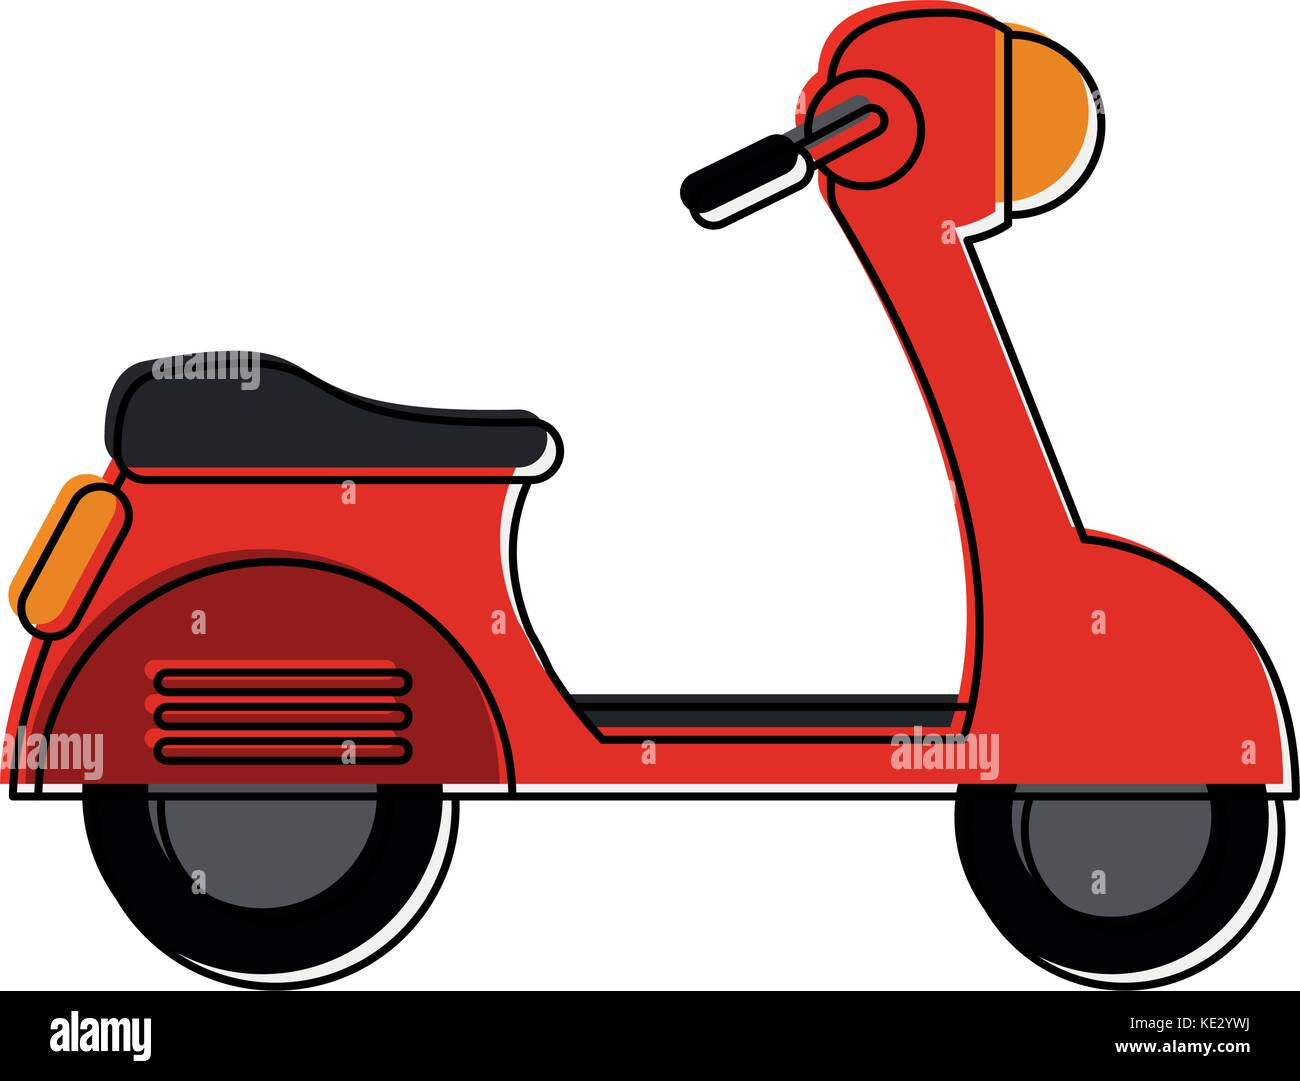 scooter sideview icon image  Stock Vector